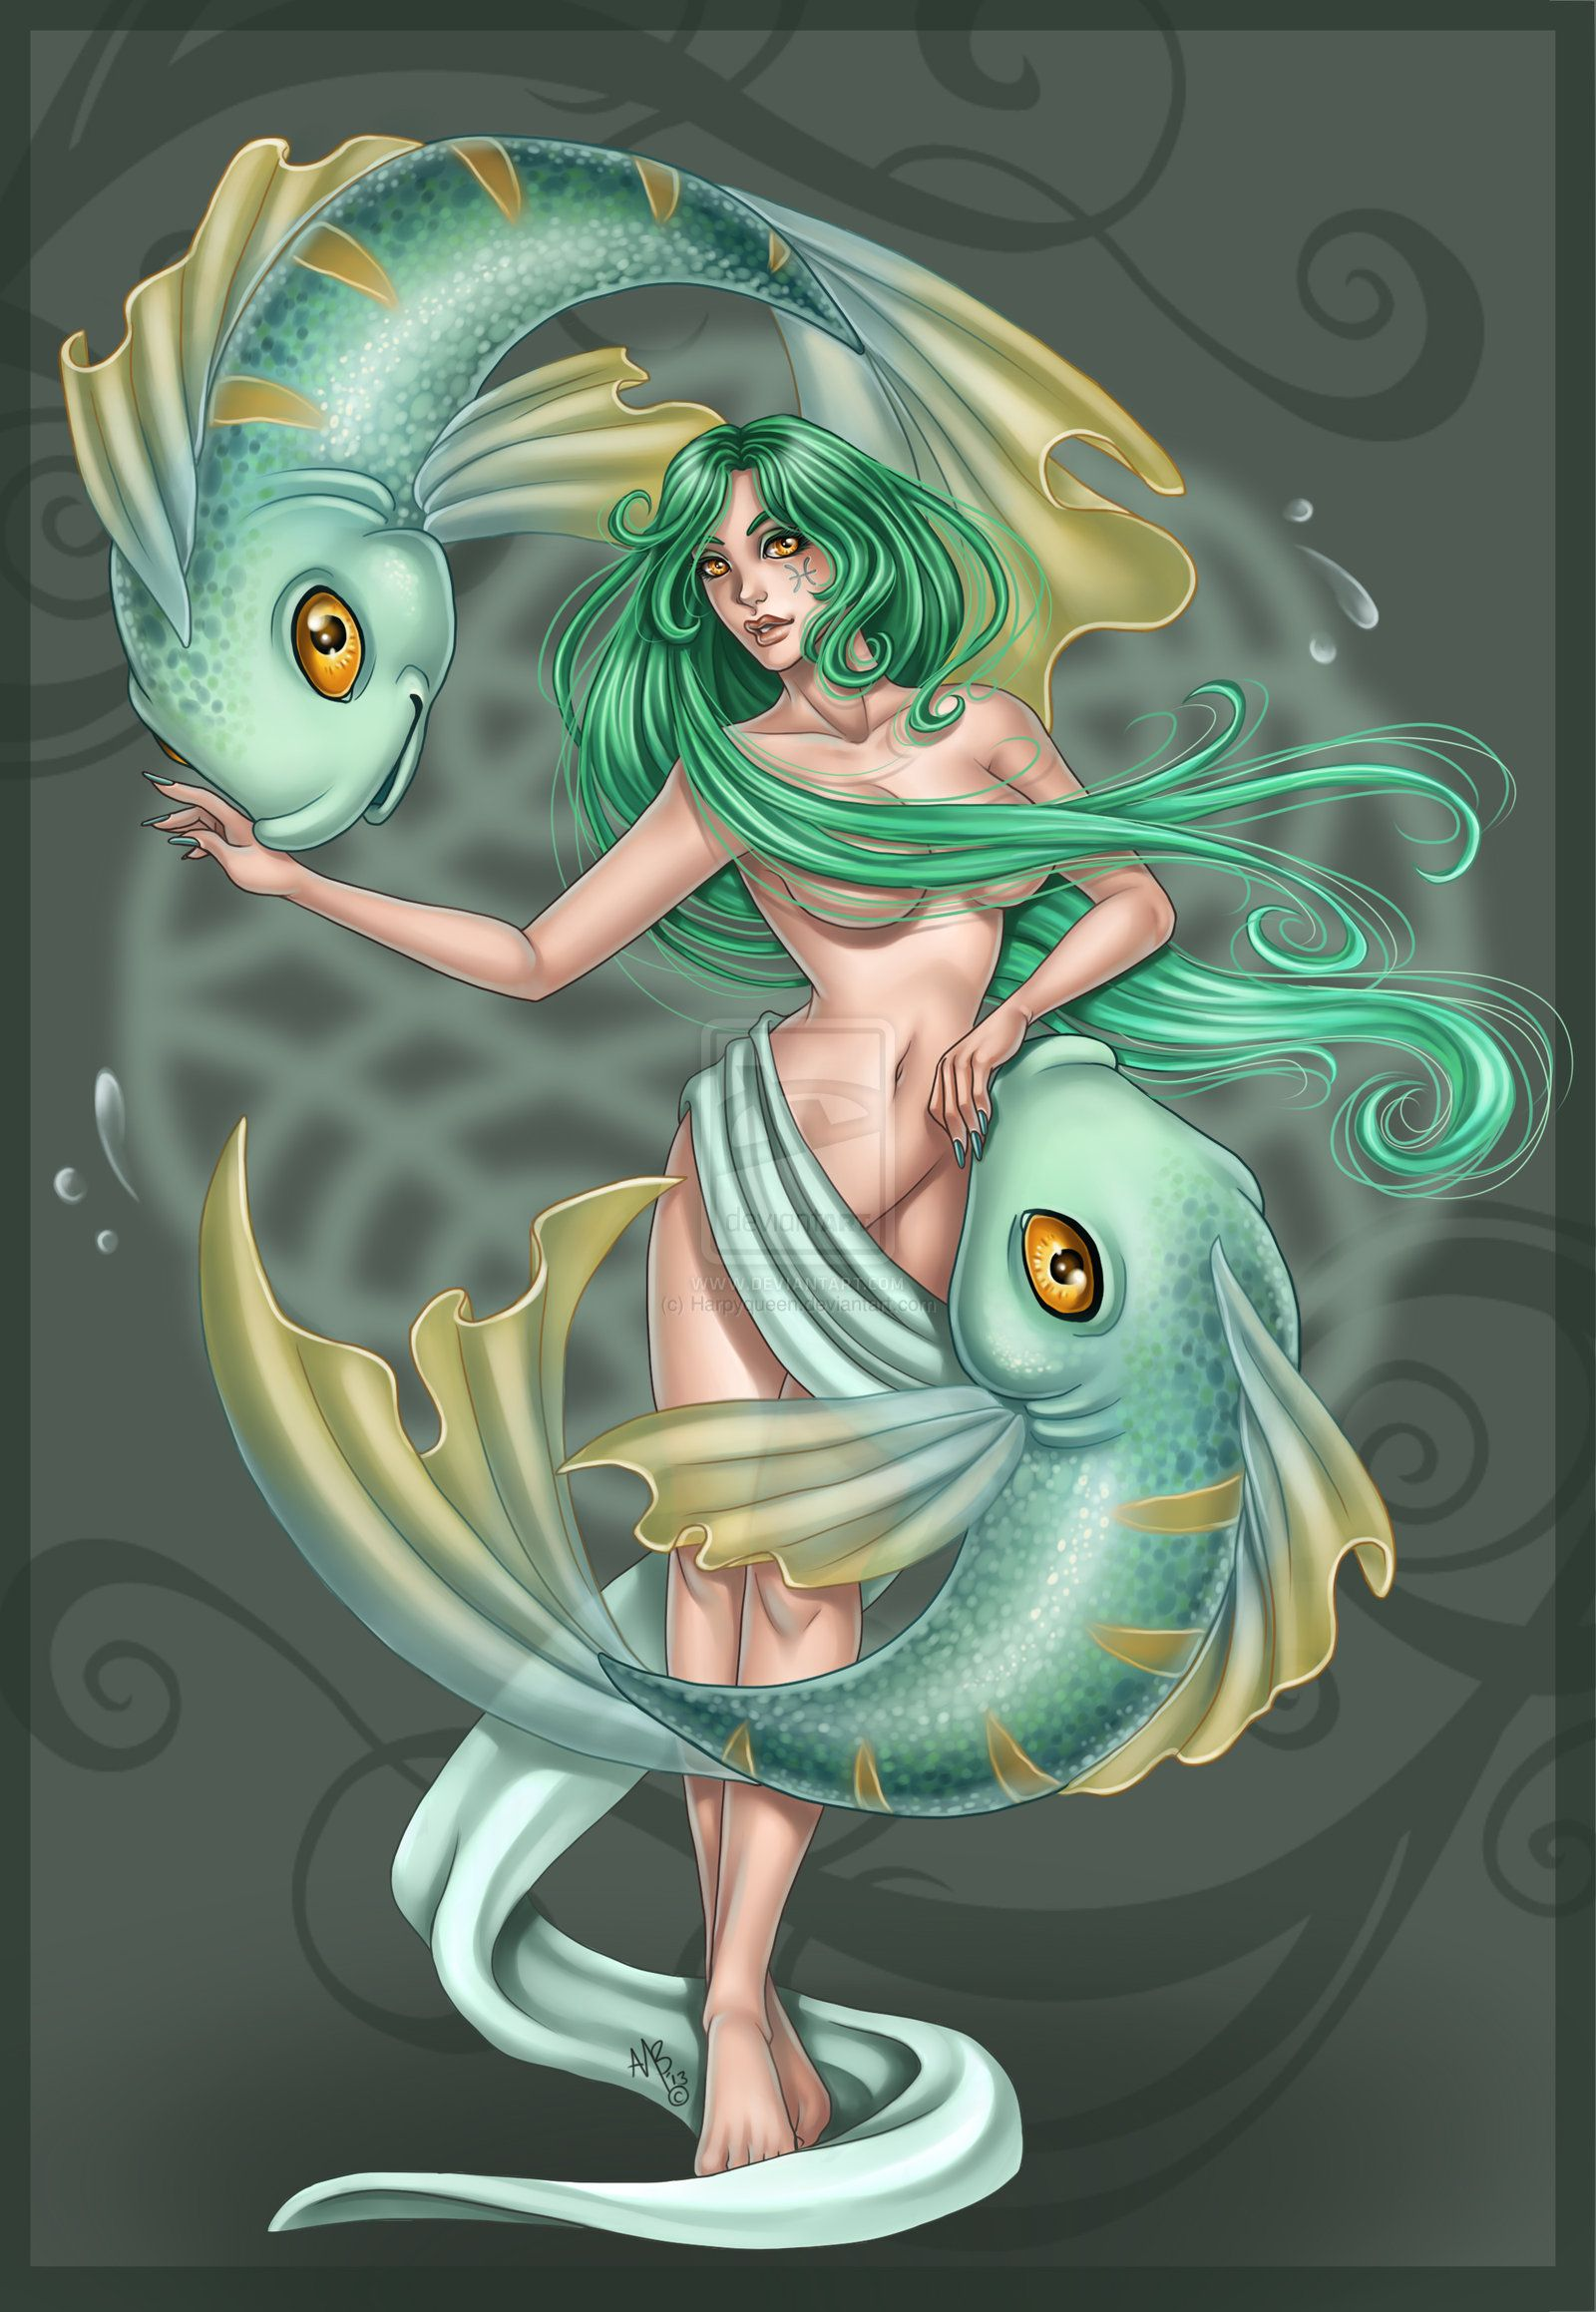 Pisces Commission By Harpyqueen At DeviantART